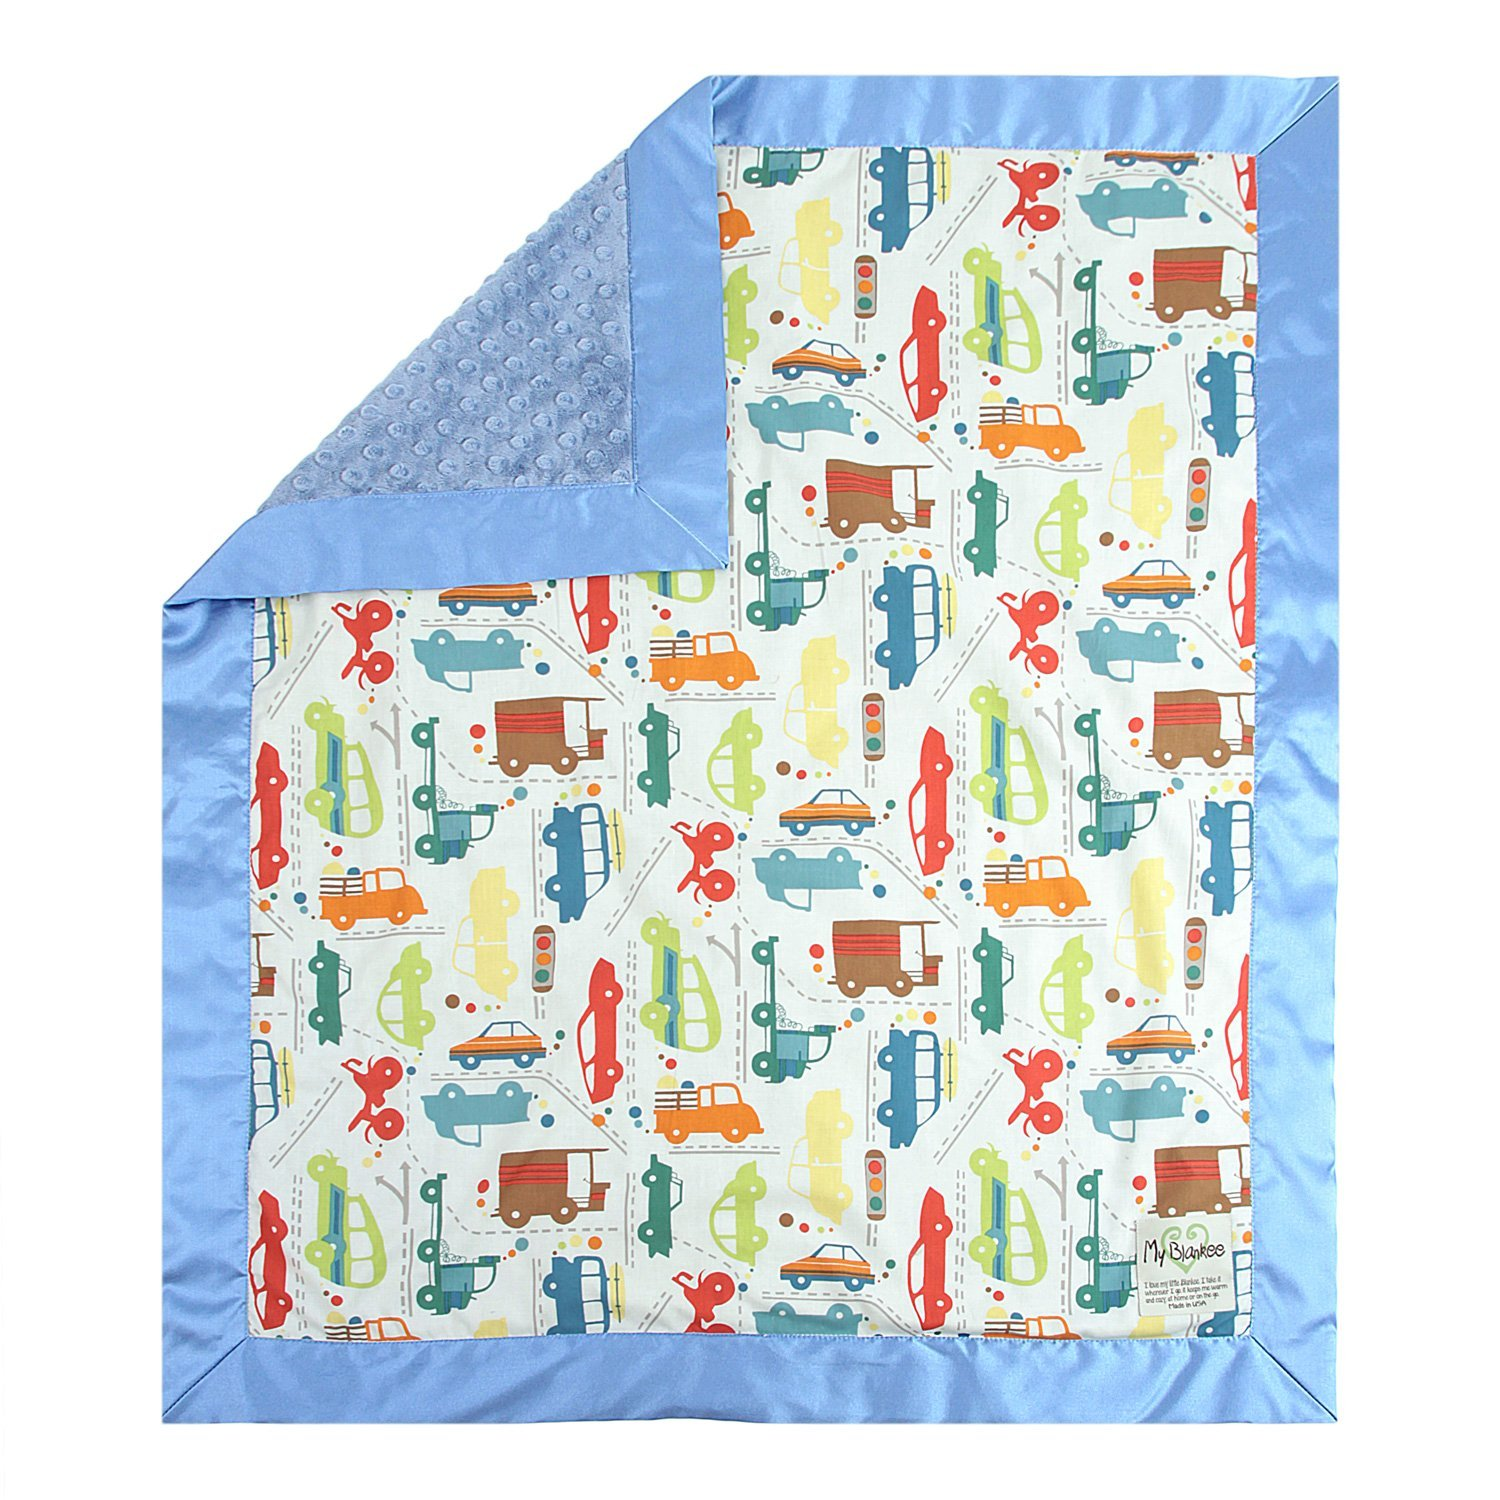 My Blankee Beep Beep White Cotton Blanket with Minky Dot,...